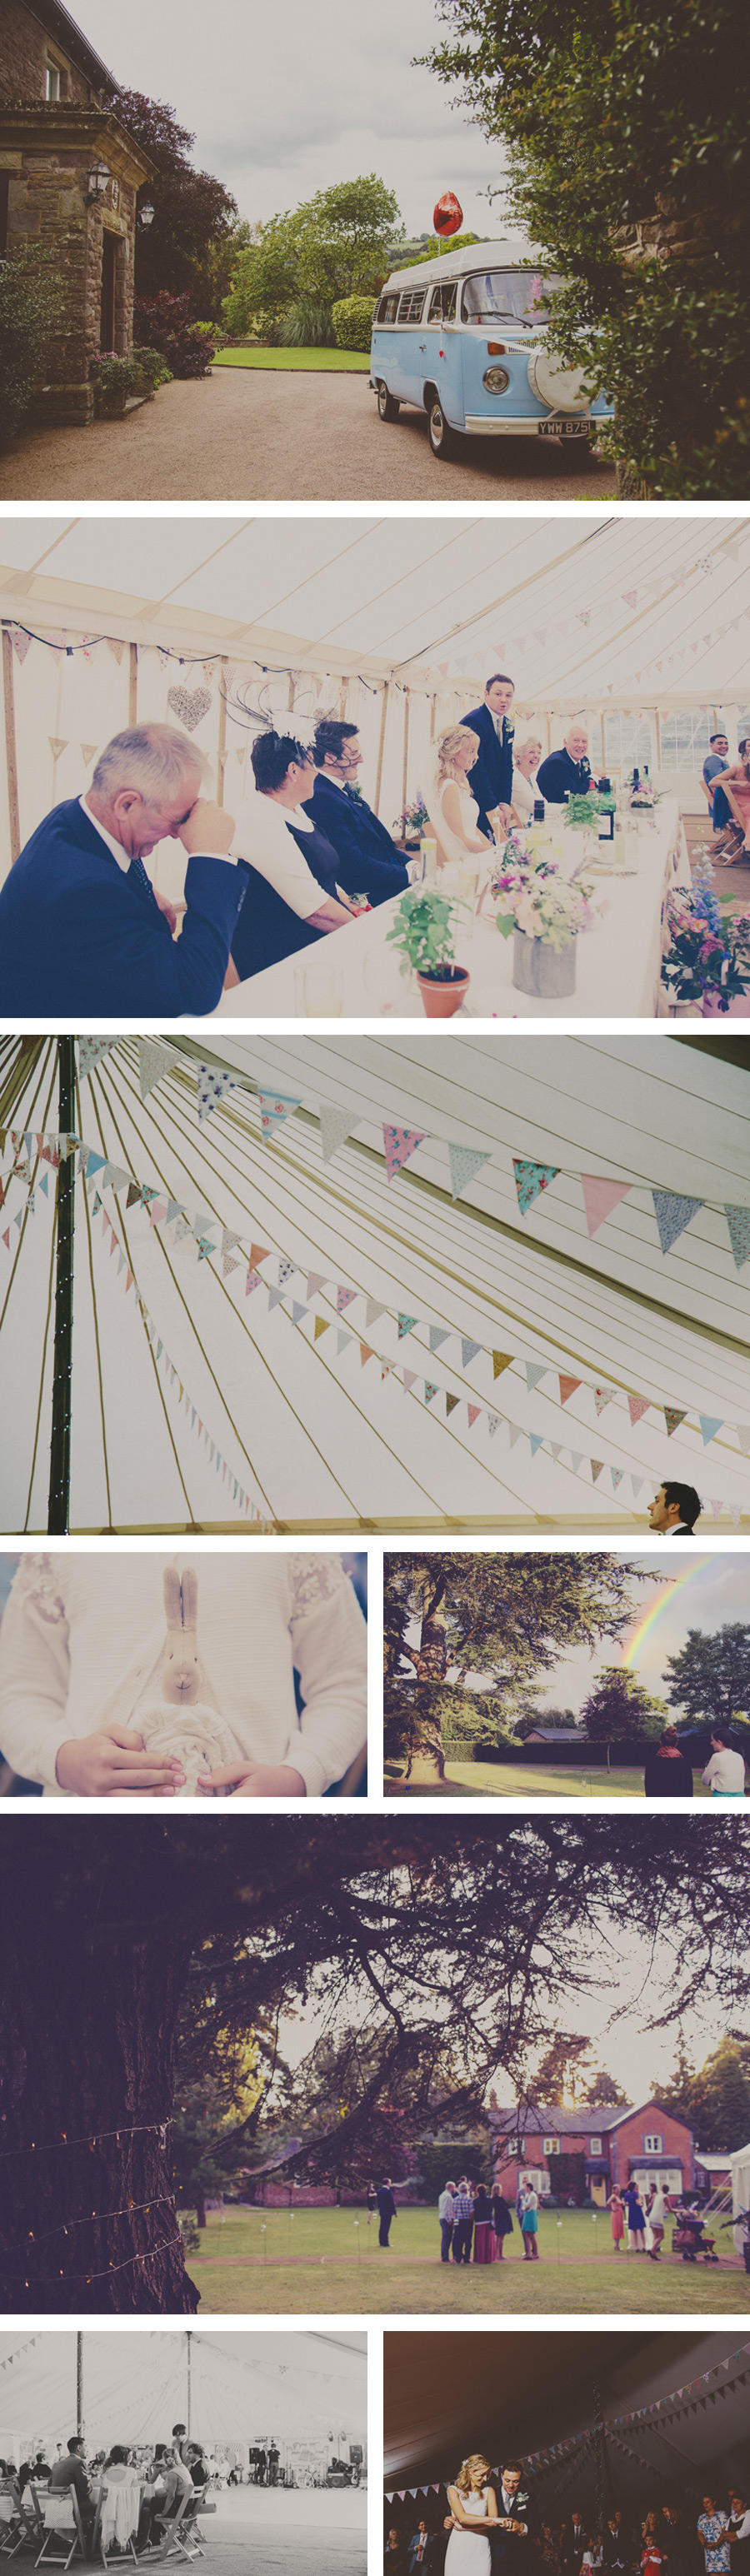 vintage wedding photography herefordshire